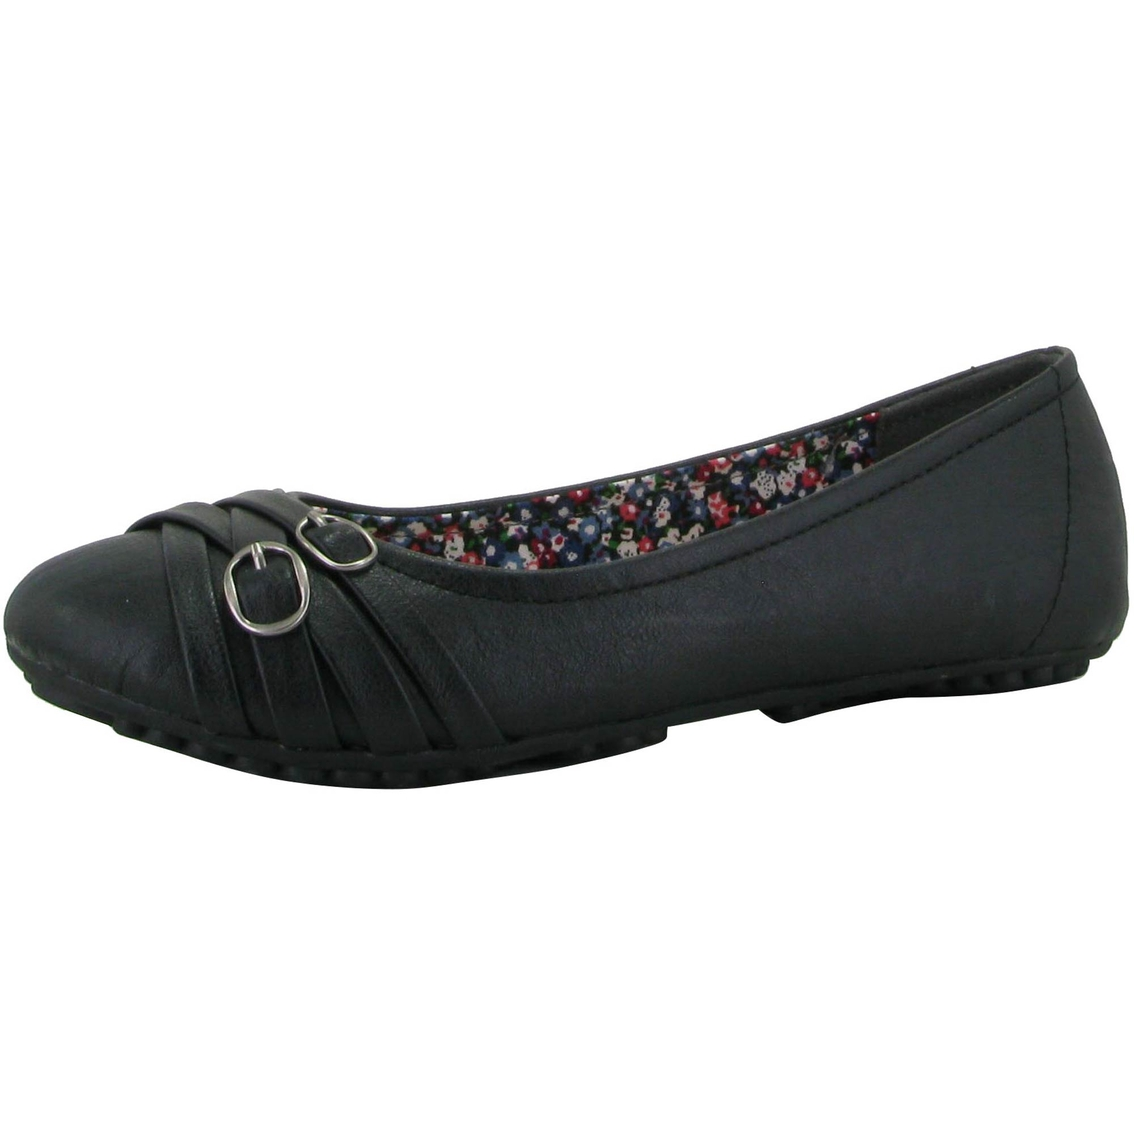 Jelly Pop Shoes Flats